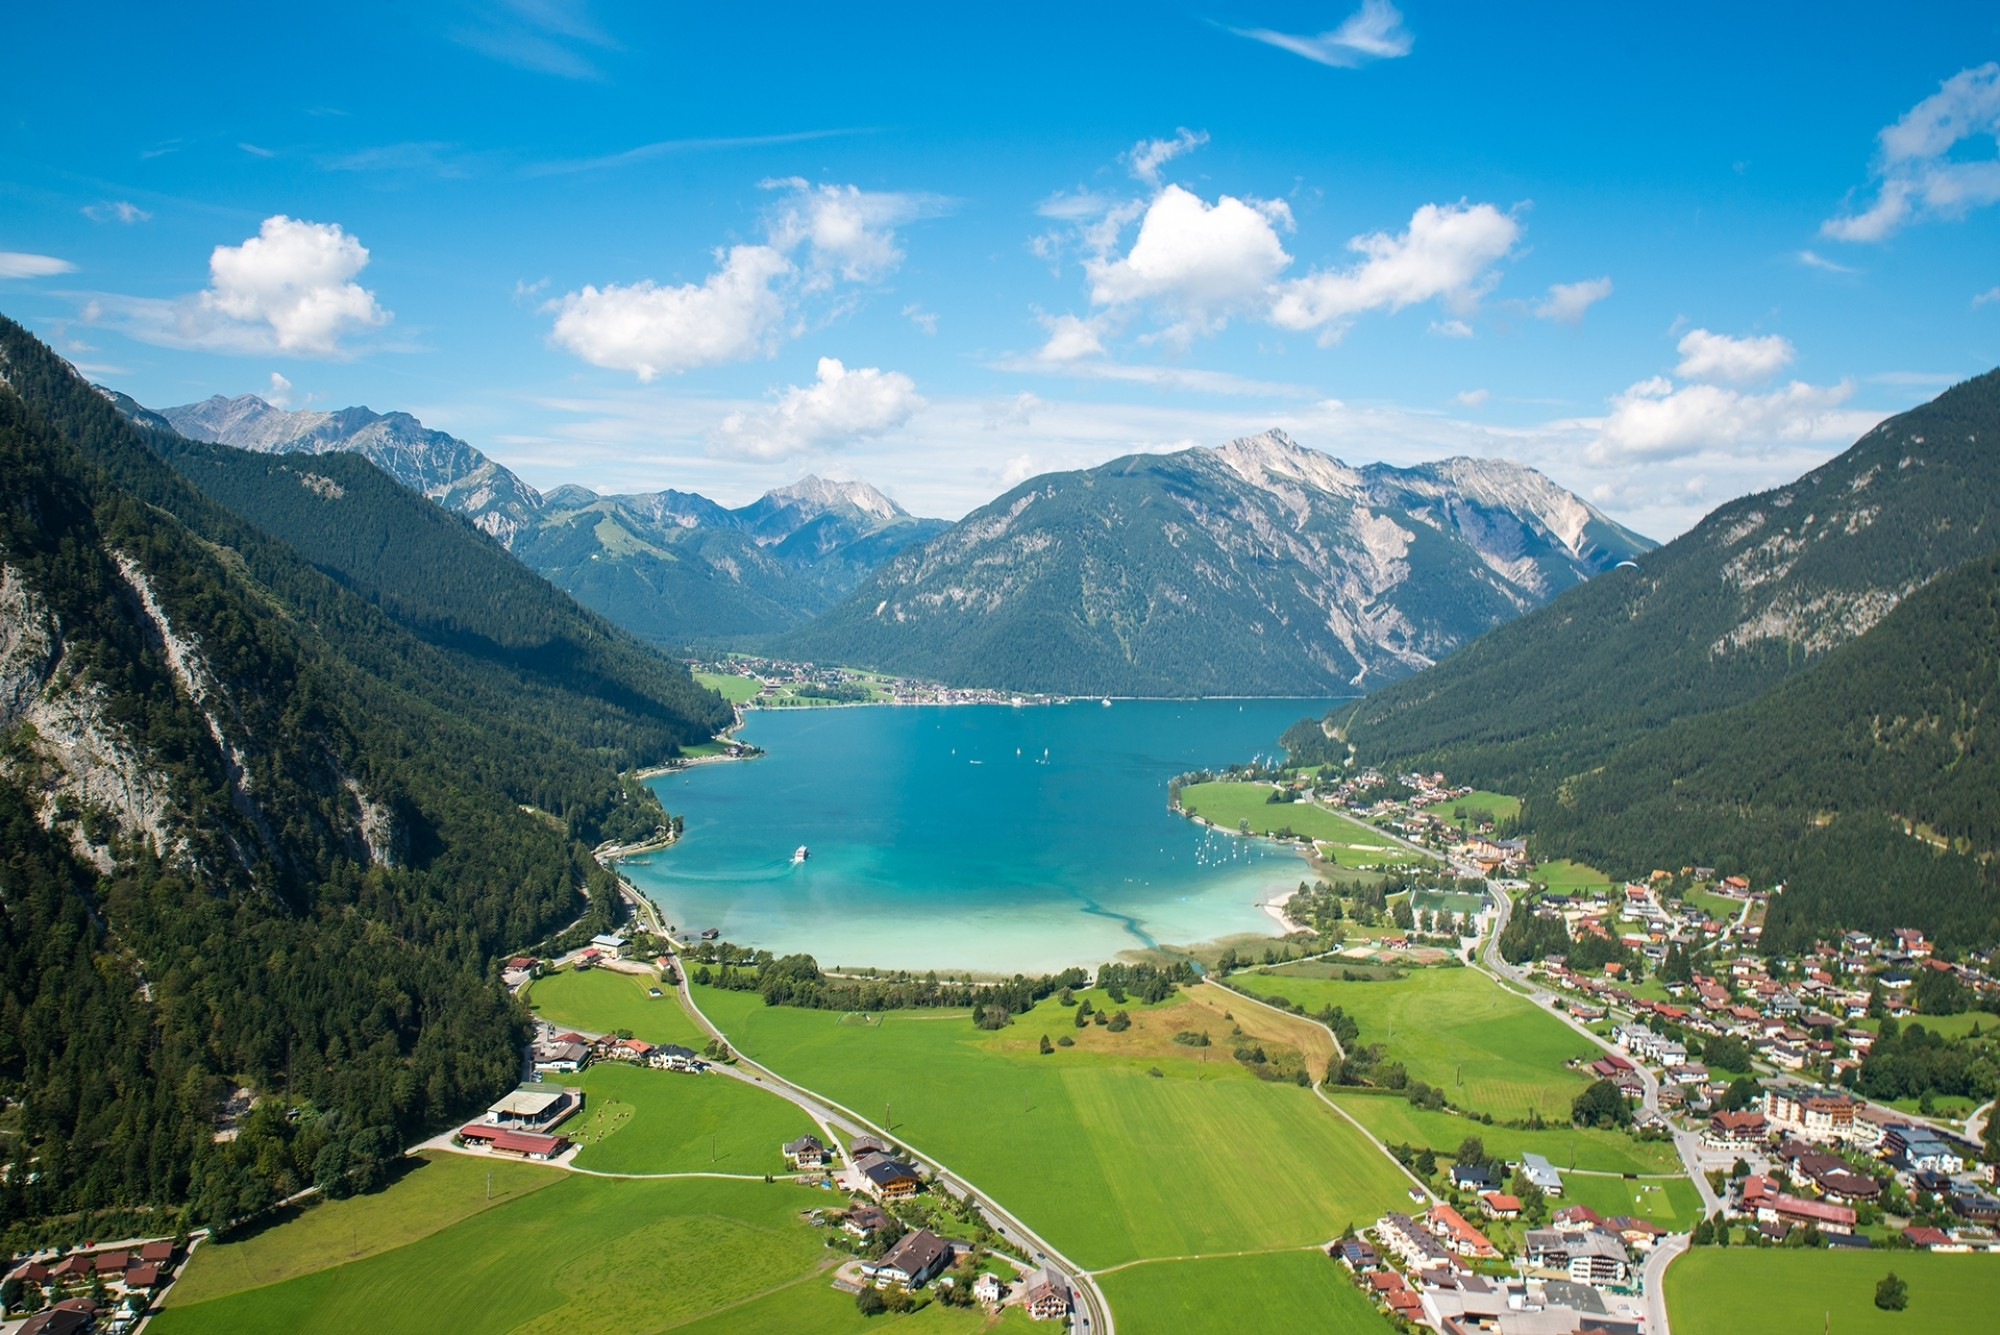 Aerial-view-from-Achensee-in-Tyrol-Austria-Achensee-bird-view